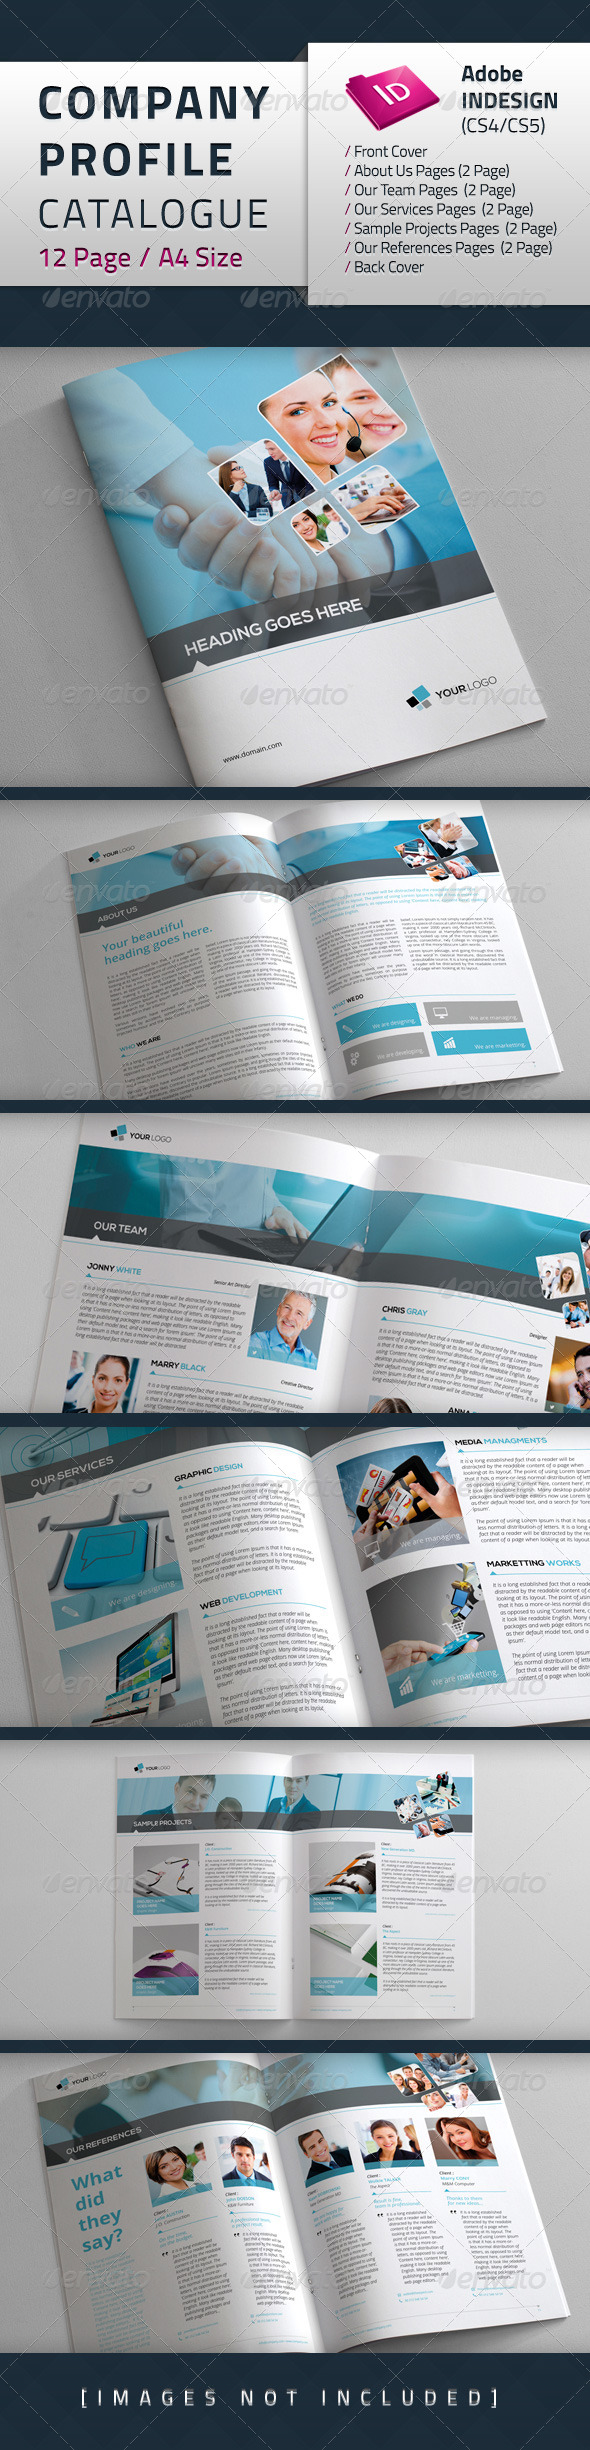 GraphicRiver Company Profile Catalogue 4635264